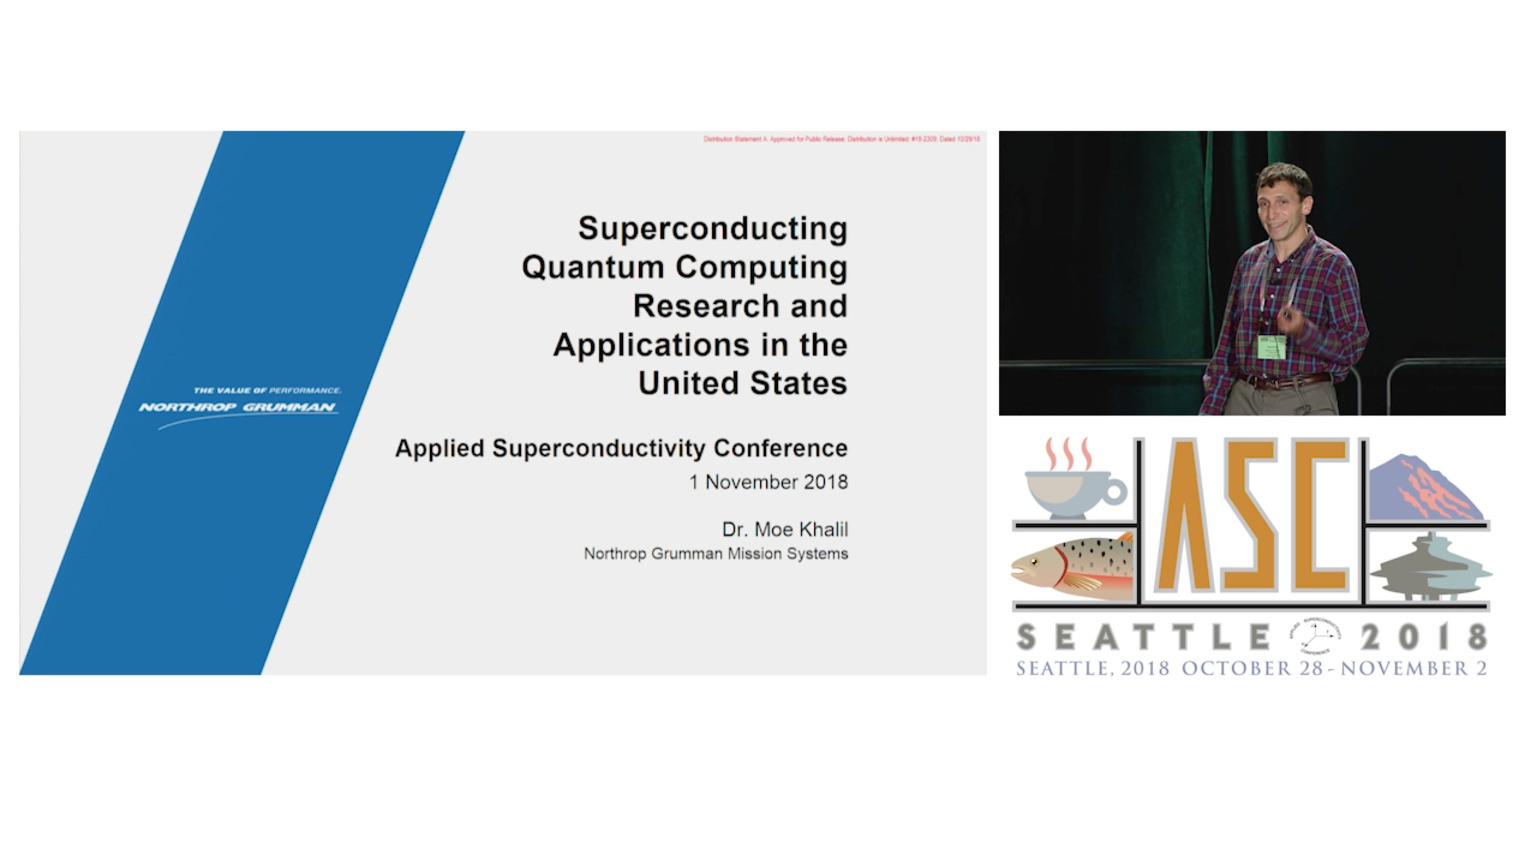 Superconducting quantum computing research and applications in the United States - Applied Superconductivity Conference 2018